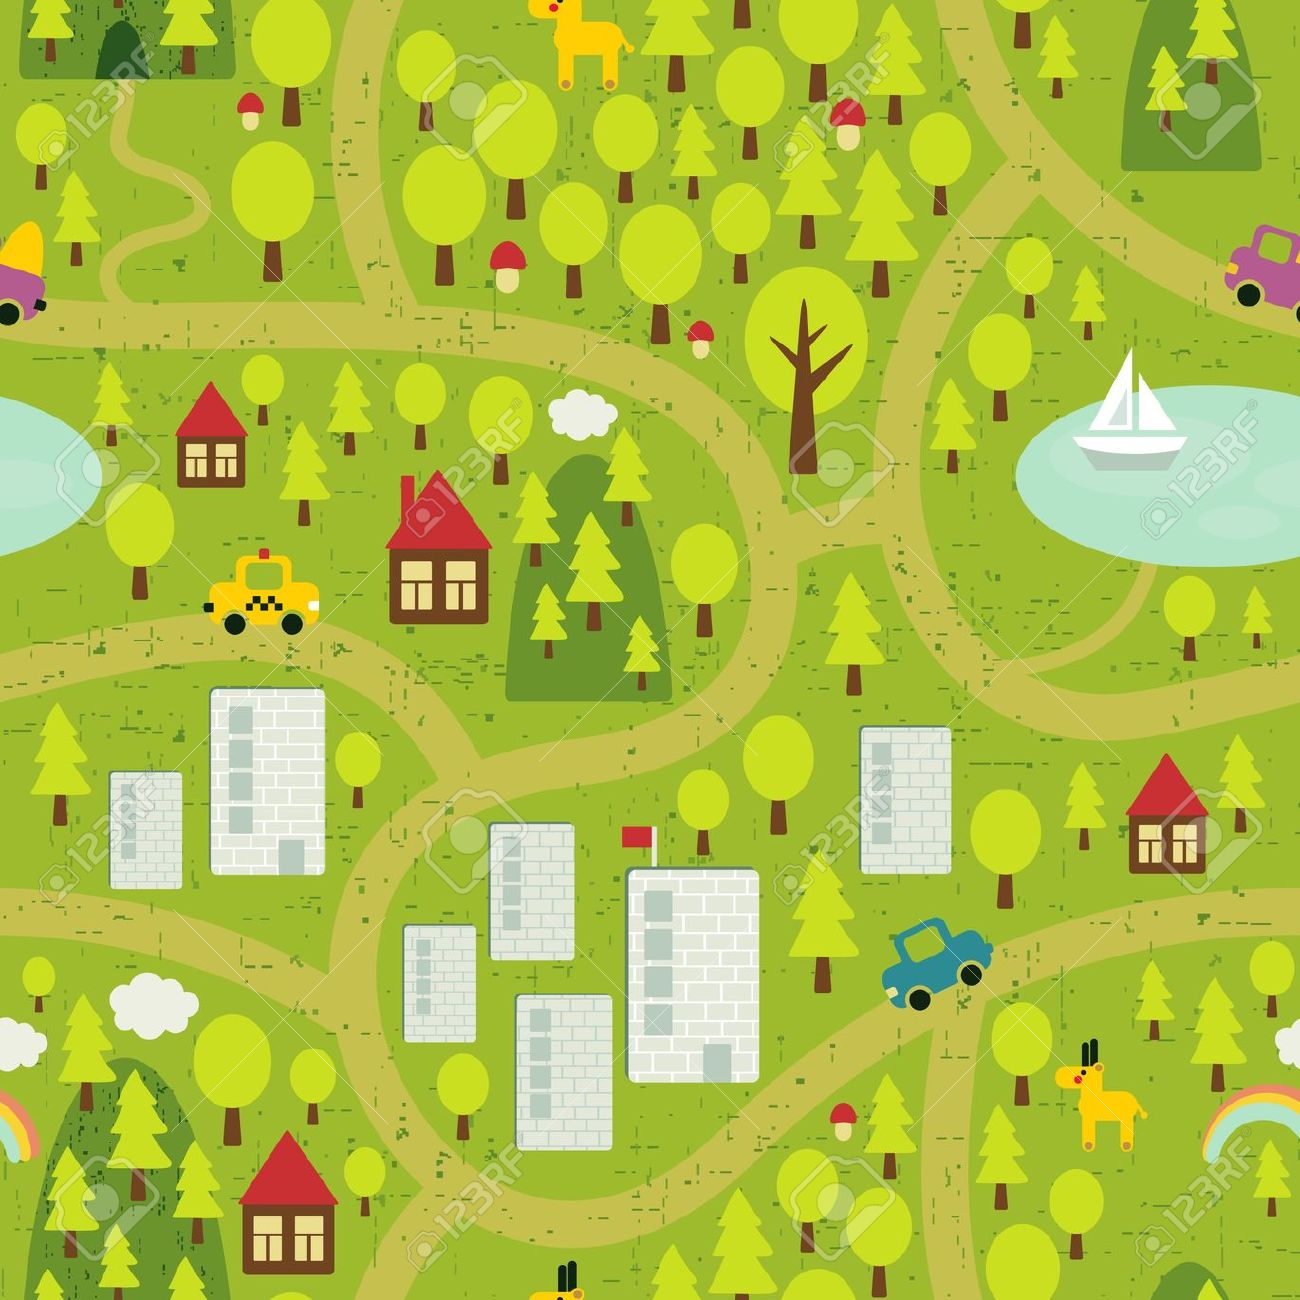 5,531 Small Town Stock Vector Illustration And Royalty Free Small.